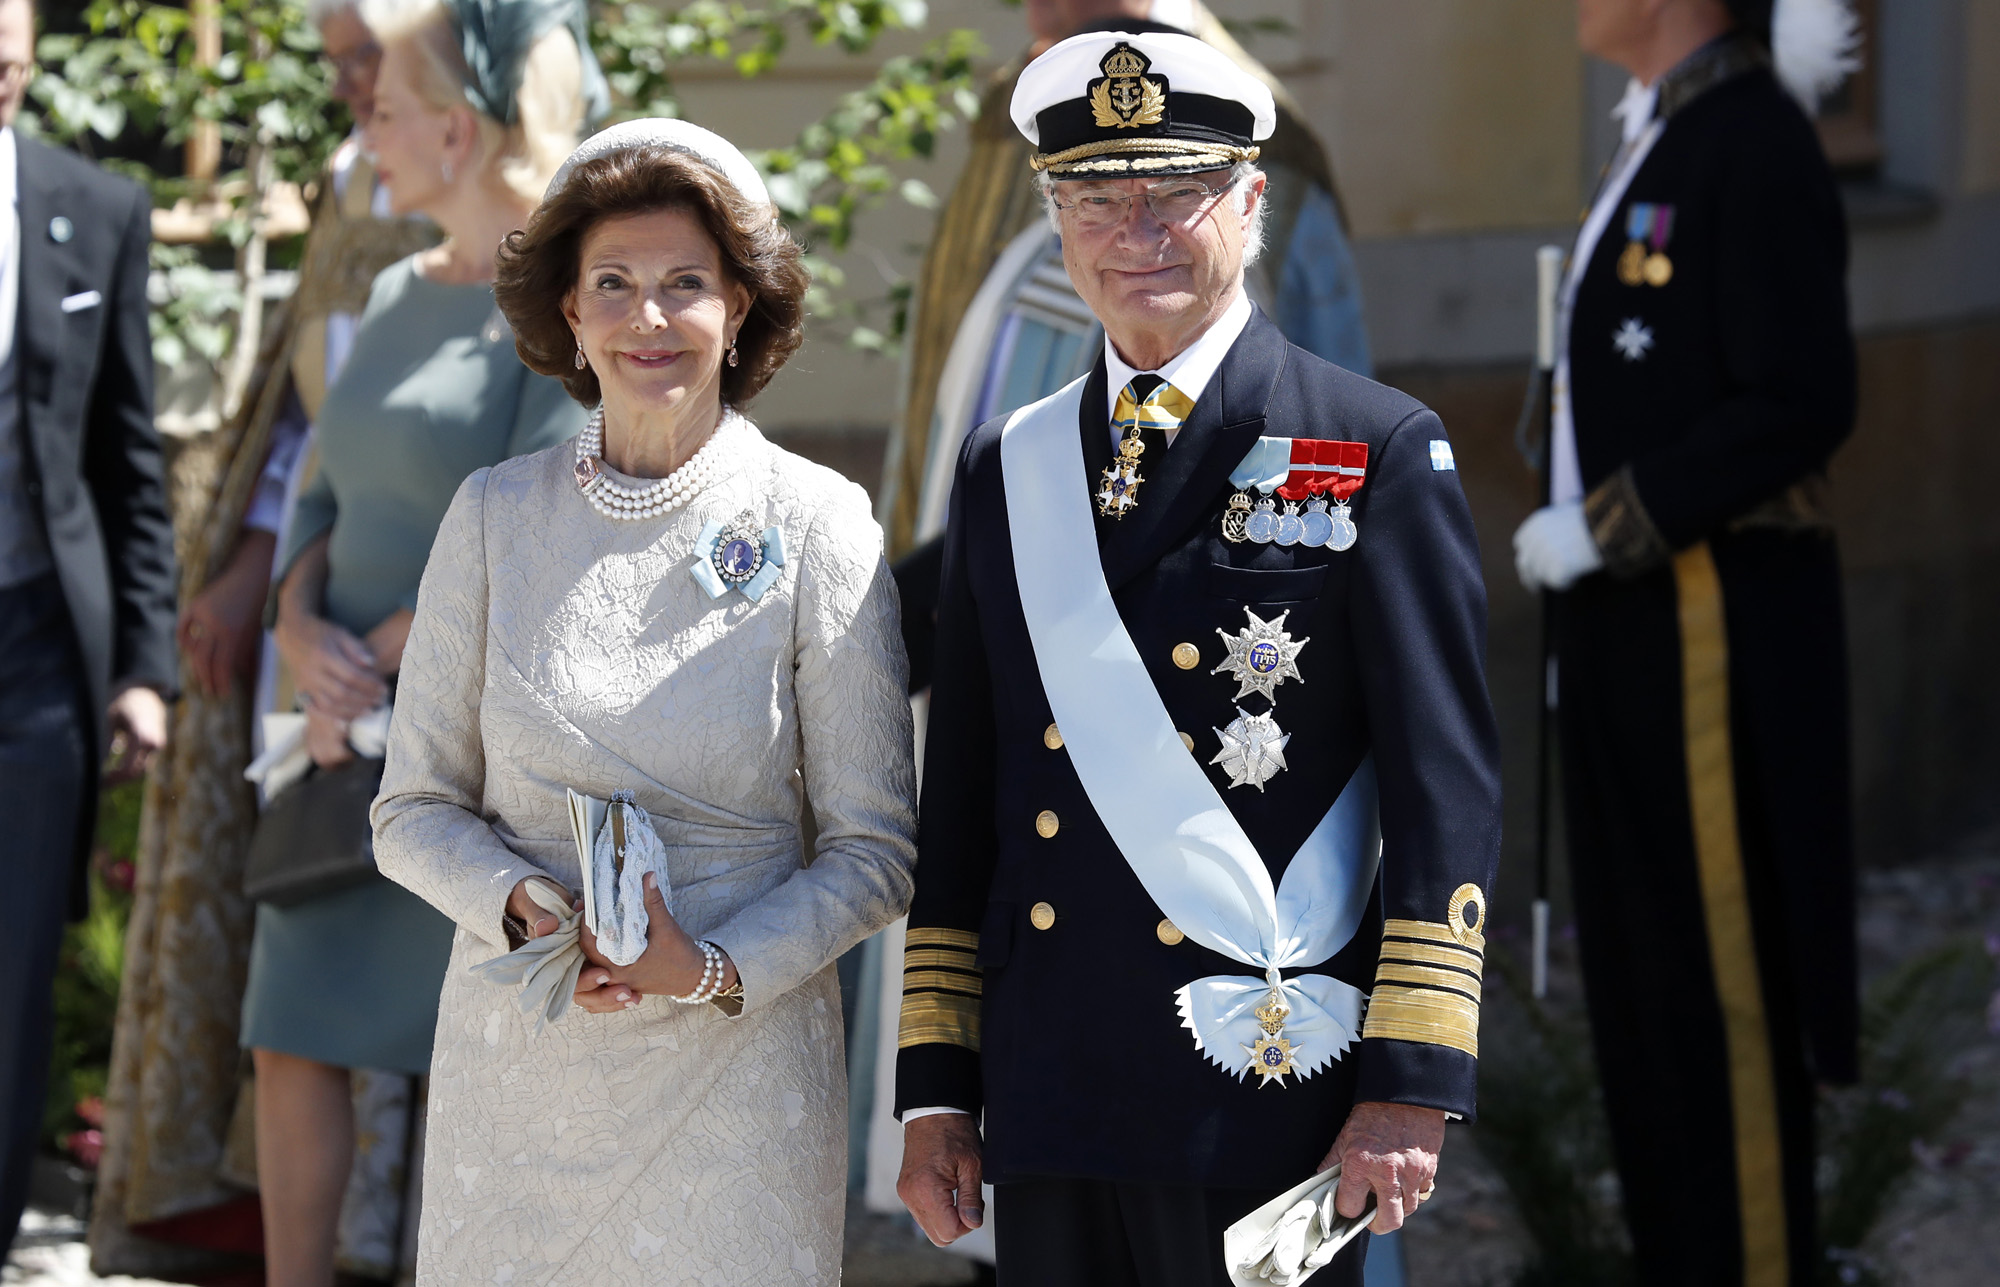 Christening  Of Princess Adrienne Of Sweden